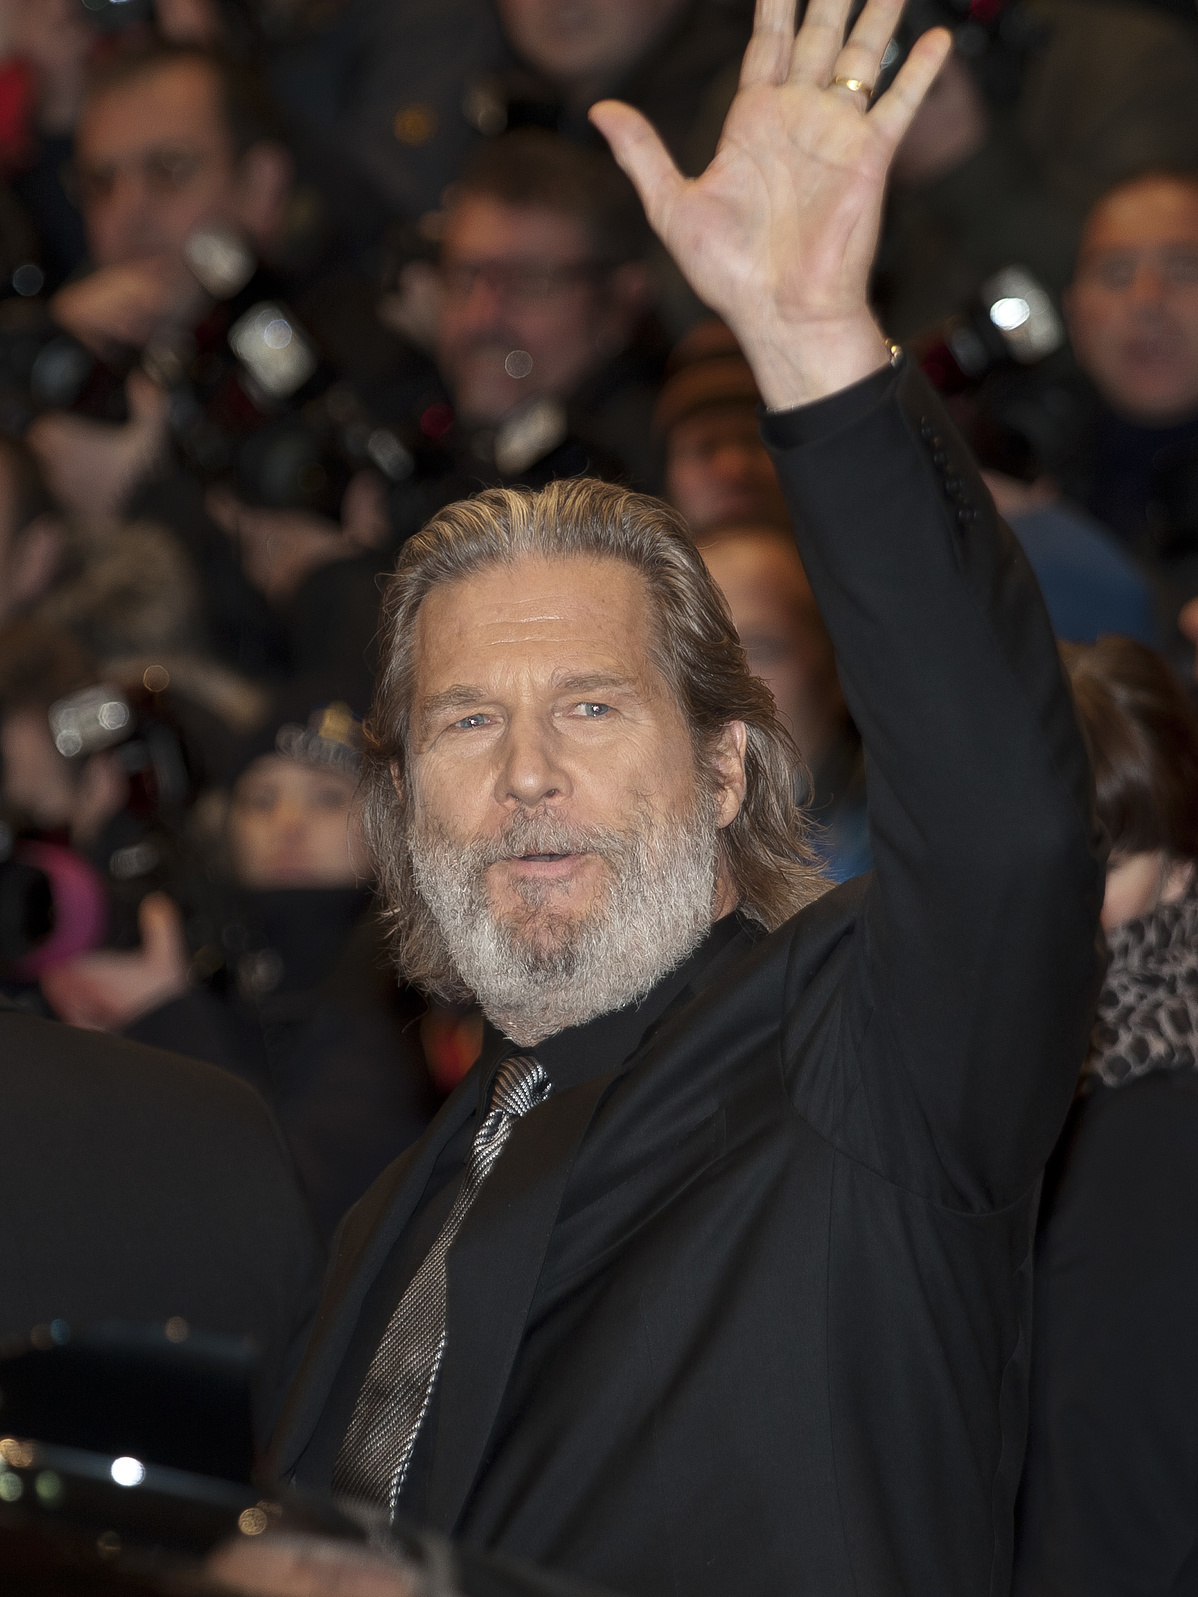 Jeff_Bridges_Berlin_Film_Festival_2011_4-142100.jpg